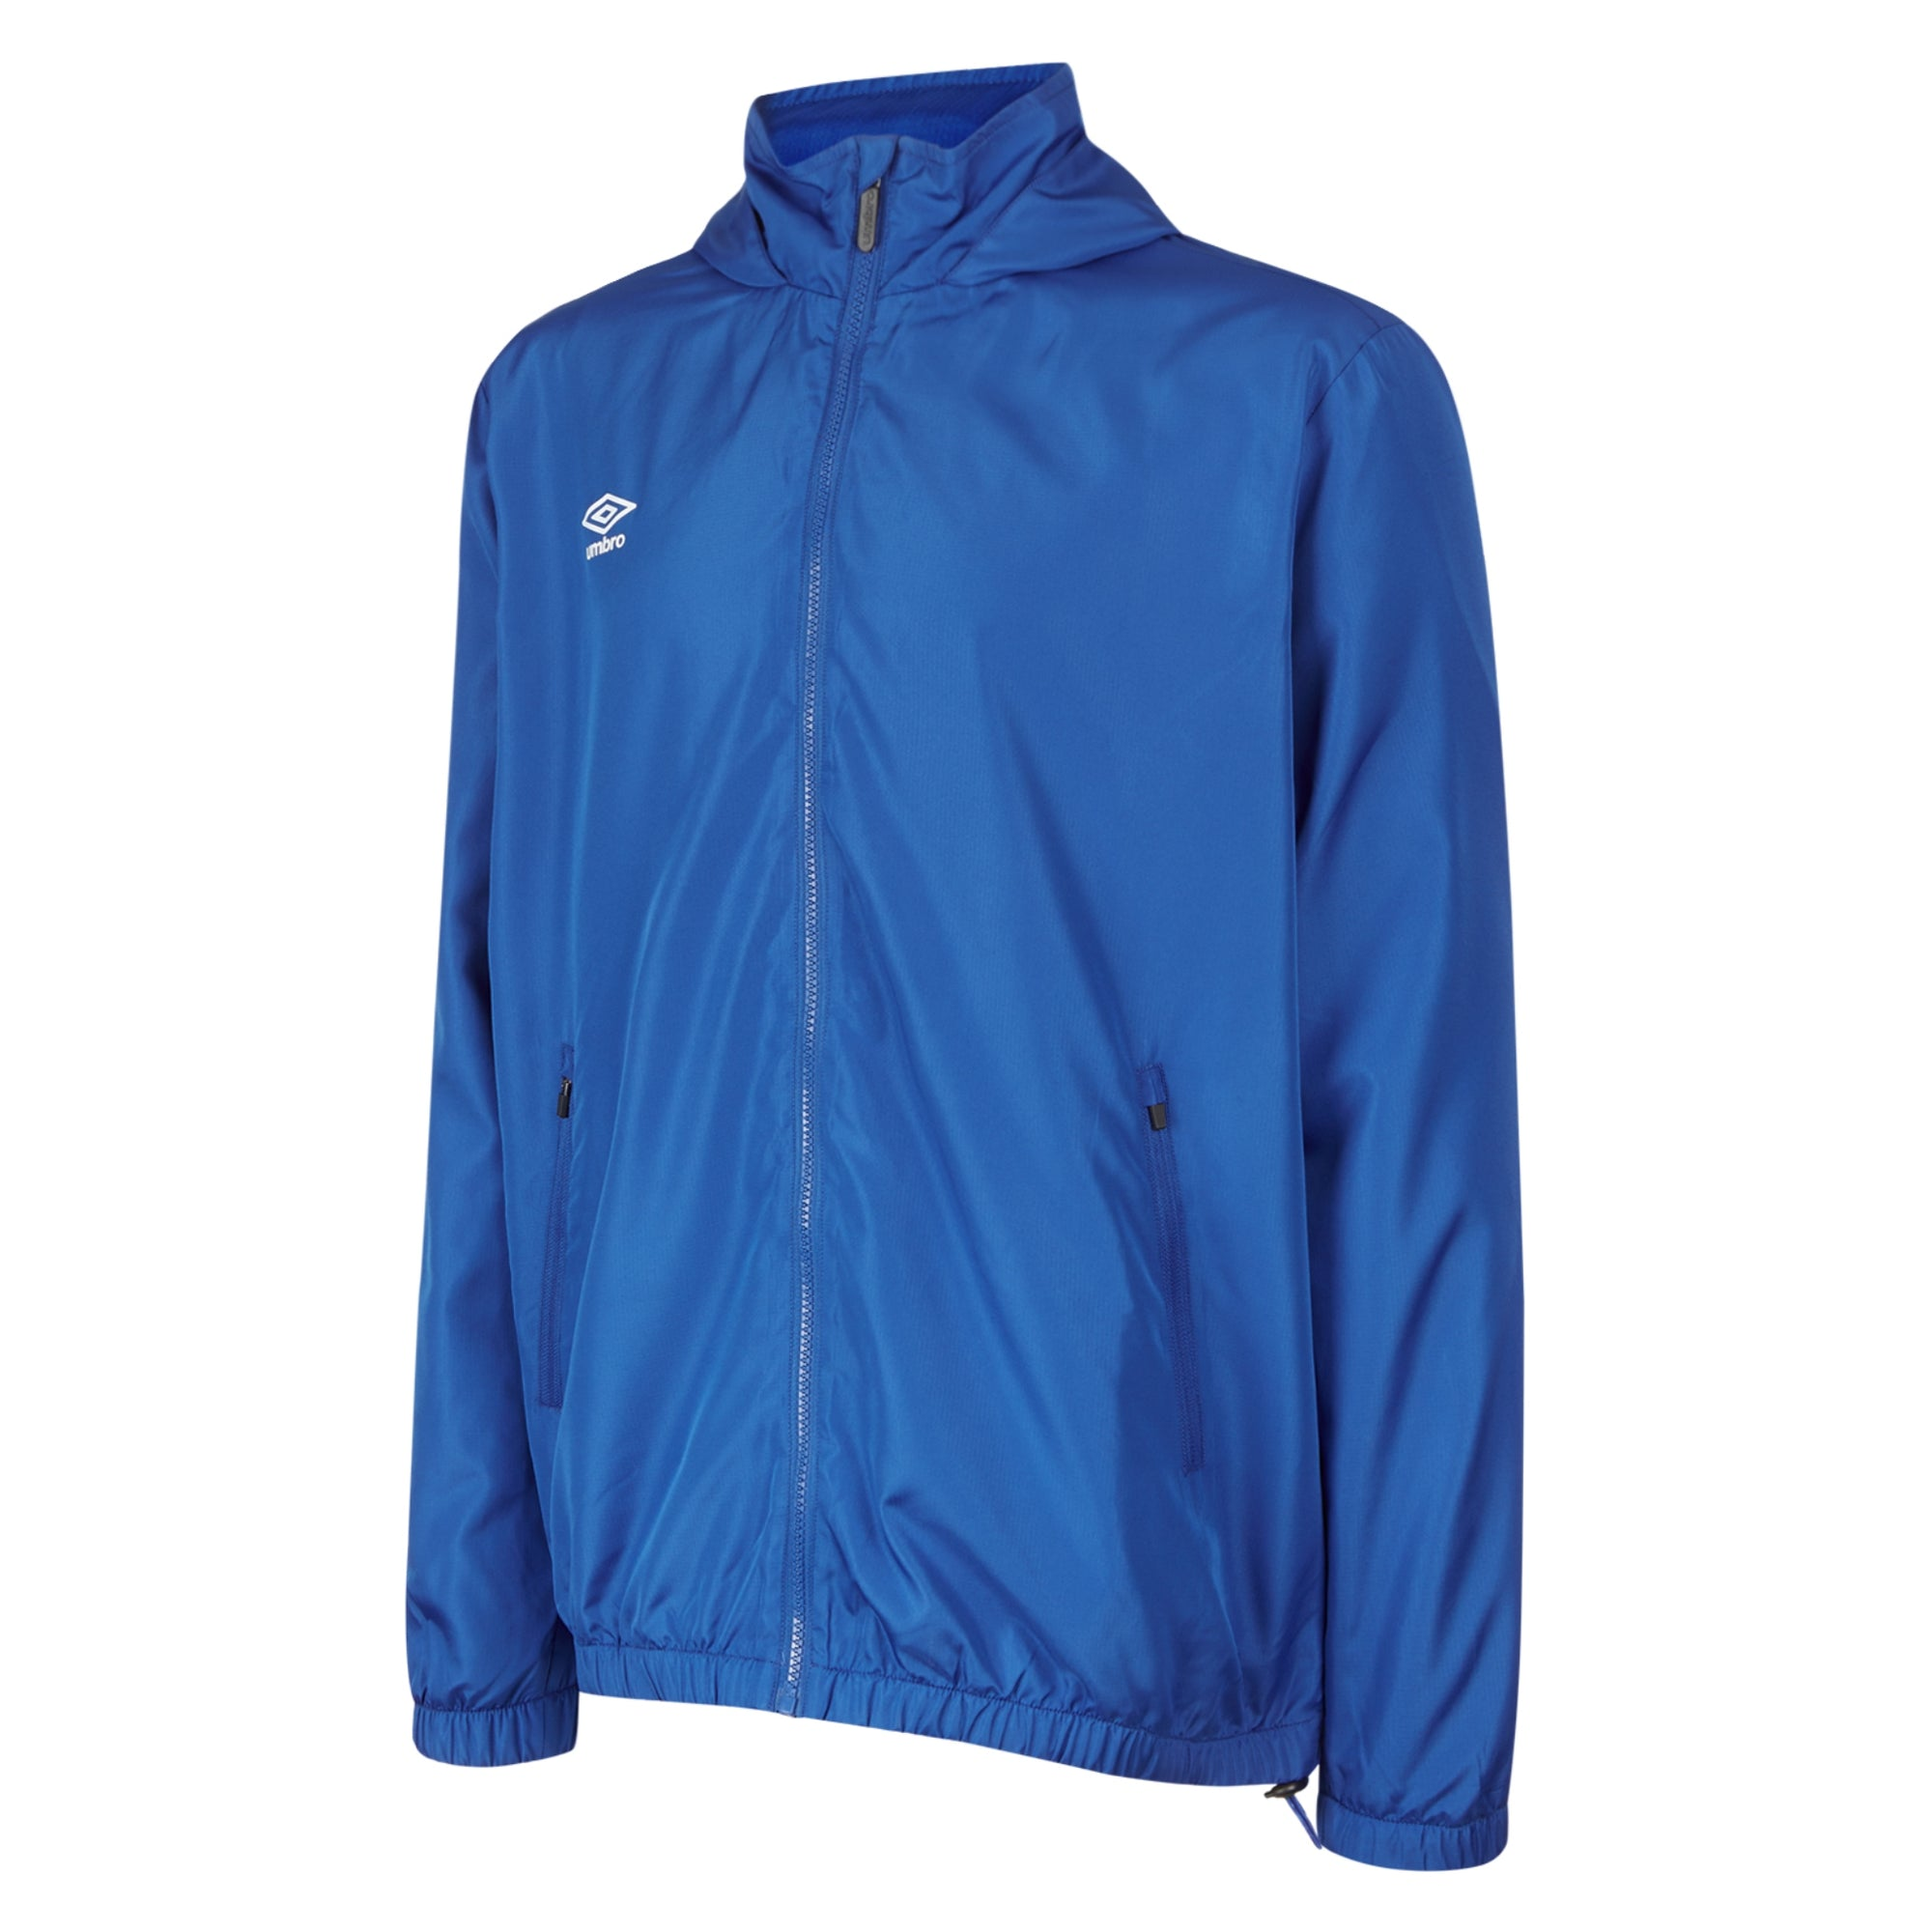 Umbro Club Essential Light Rain Jacket - Royal